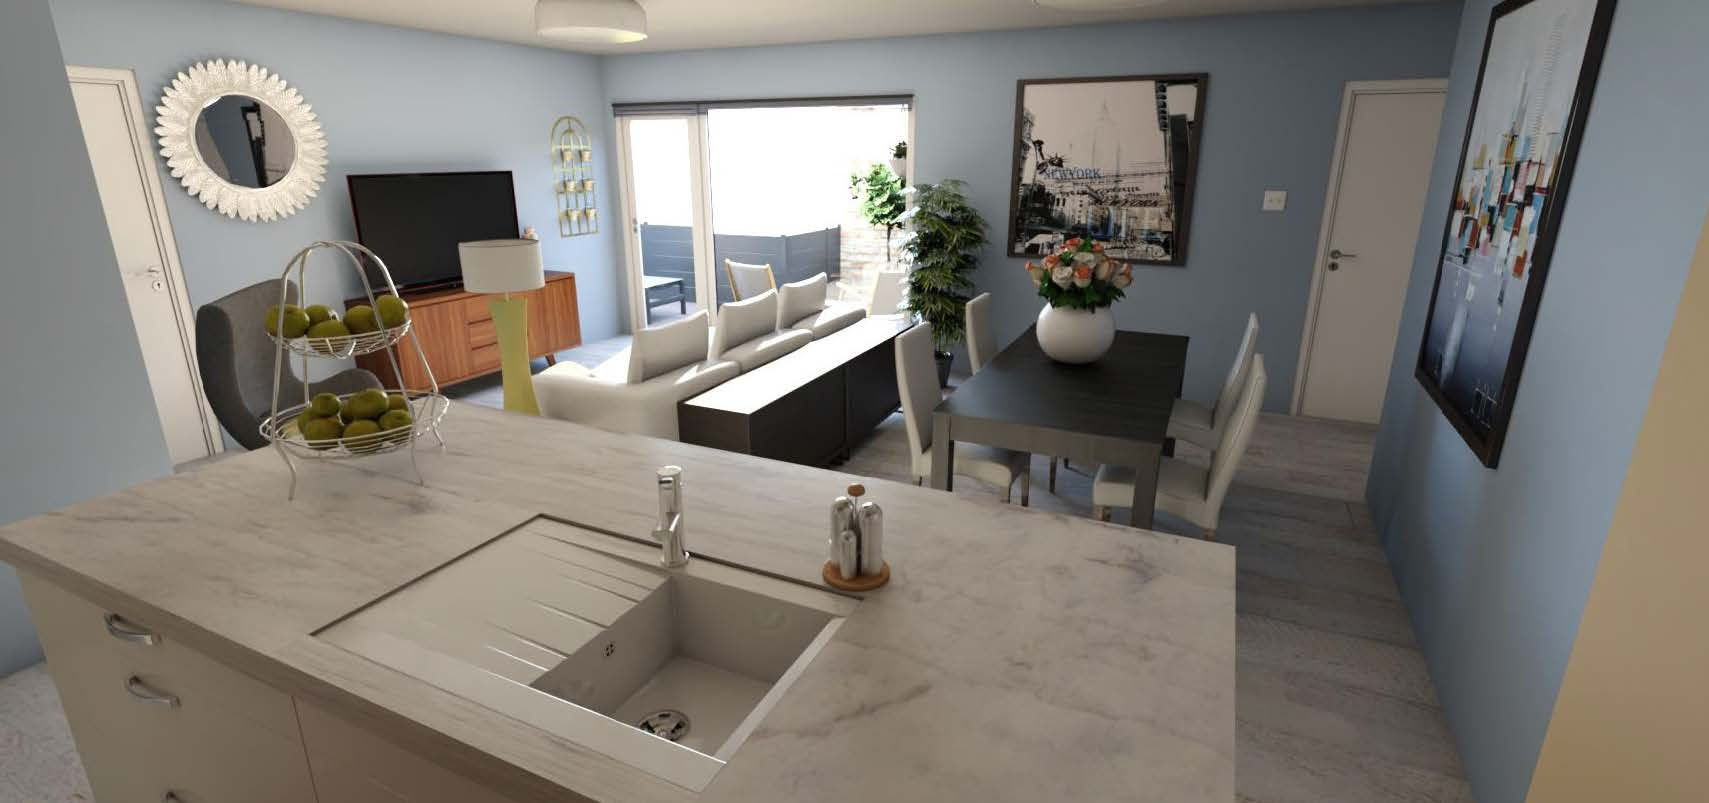 HomeByMe rendering of a living room with island kitchen